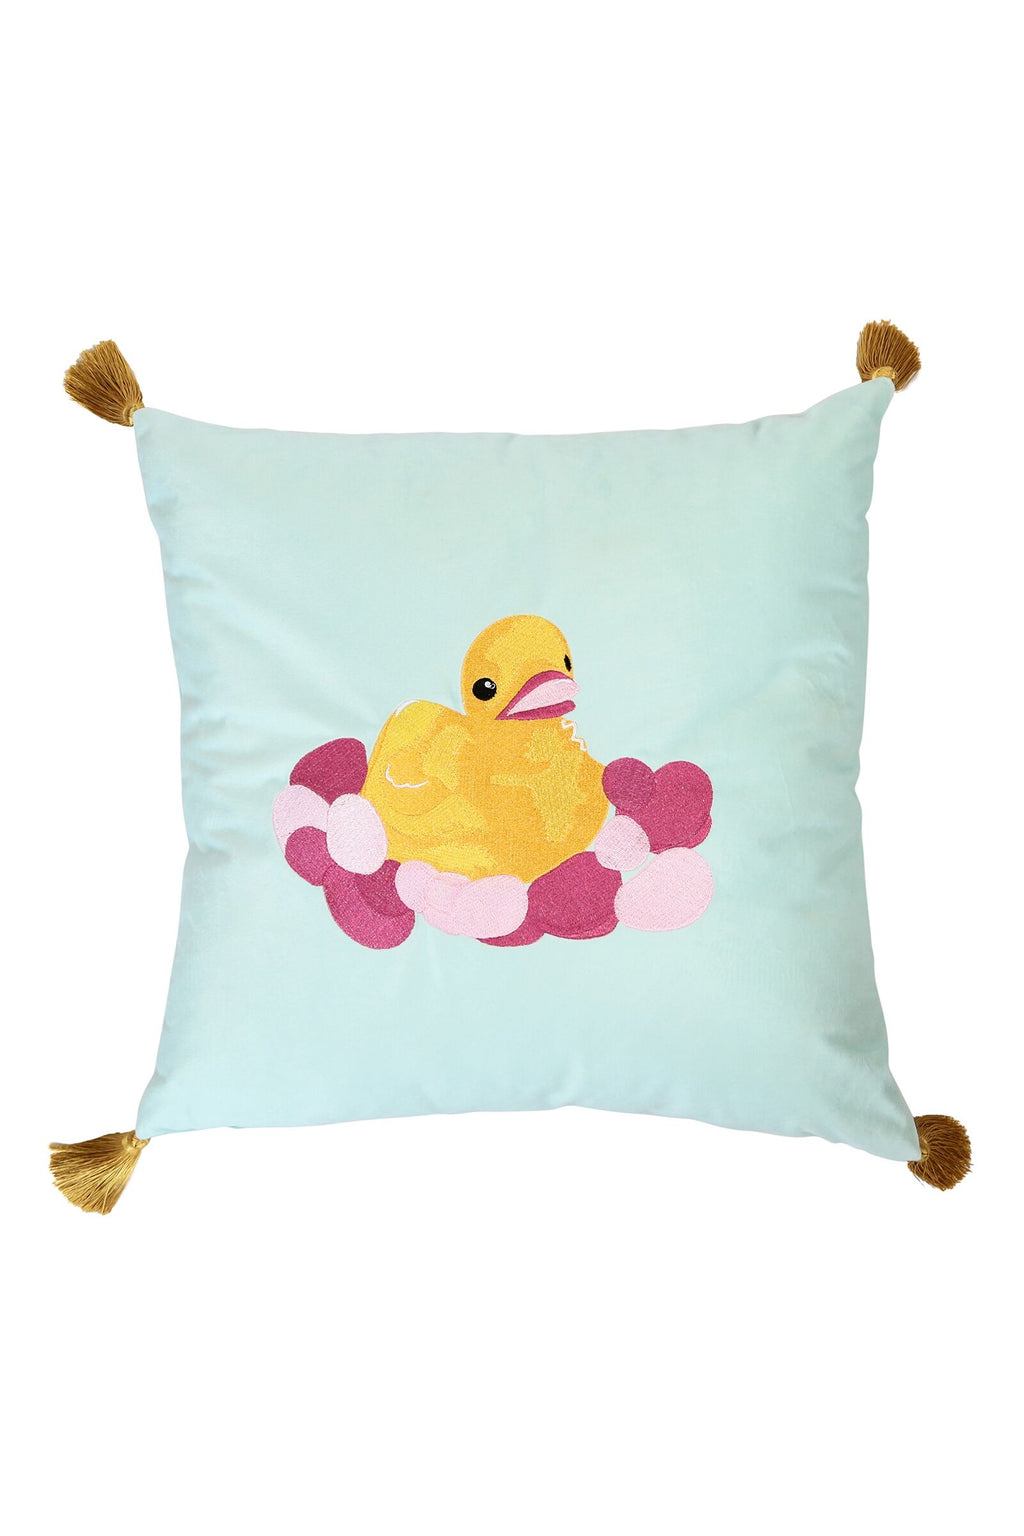 Duck Cushion with Tassels